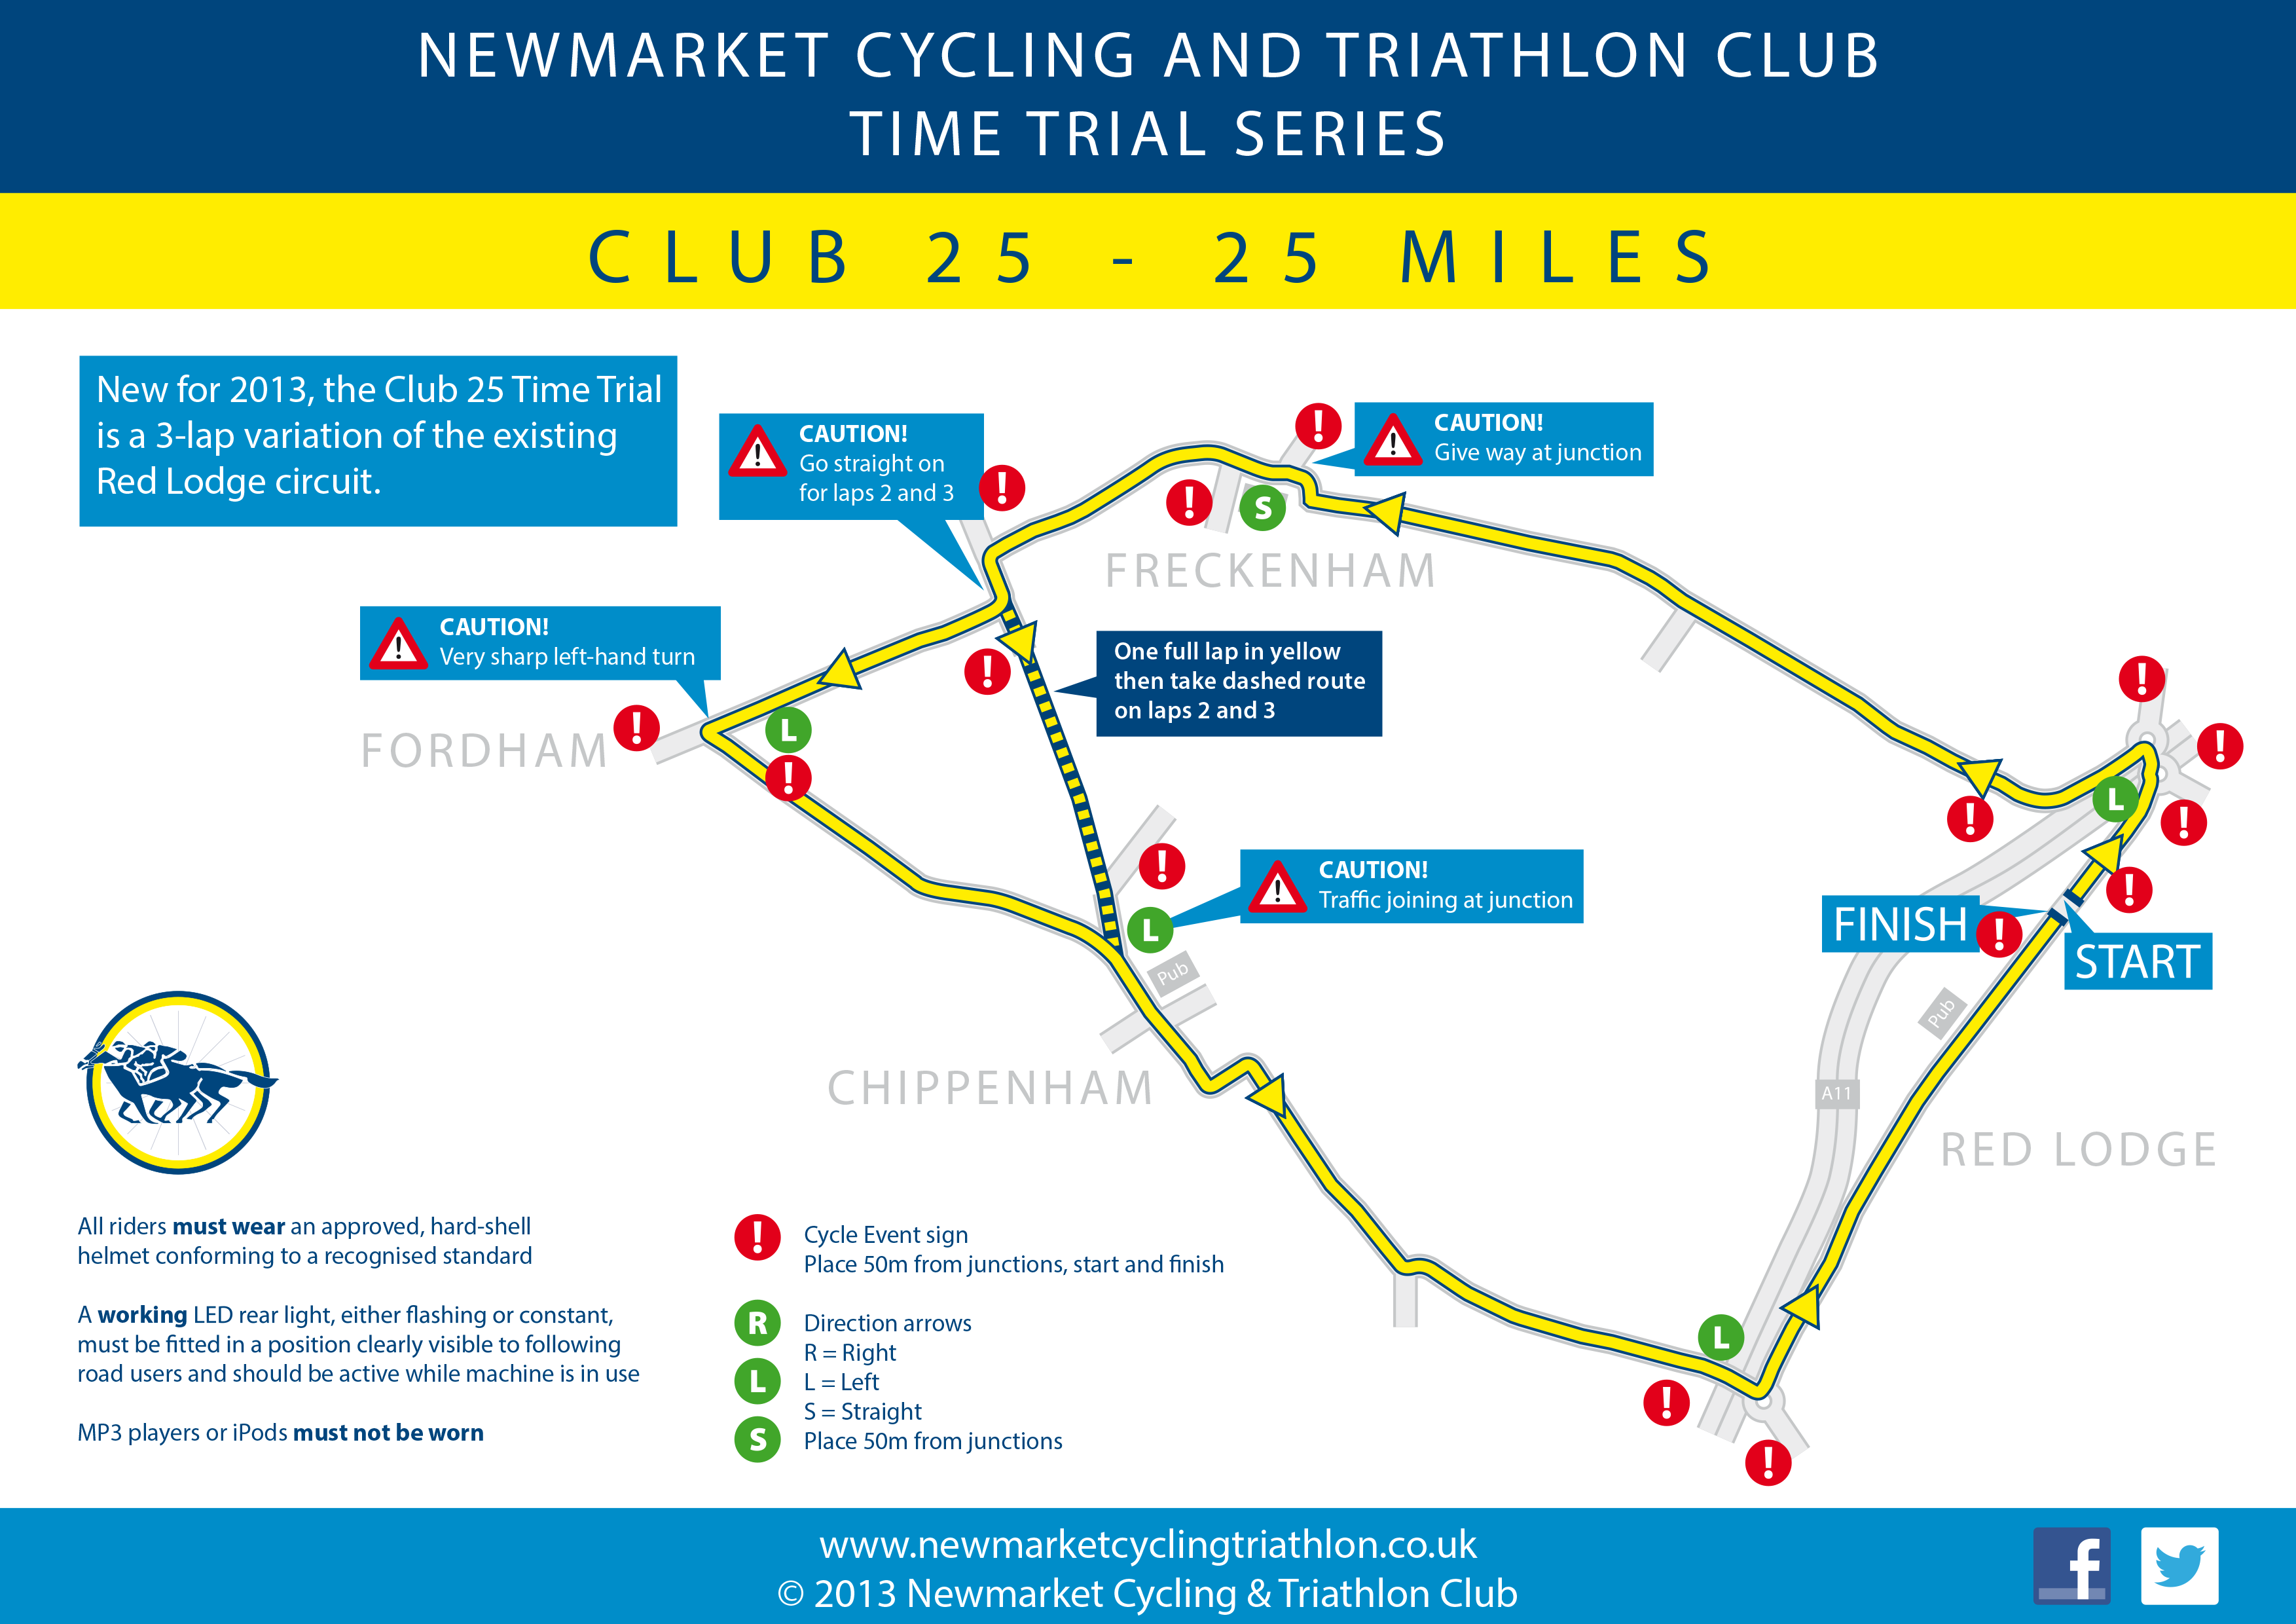 NCTC Club 25 TT route